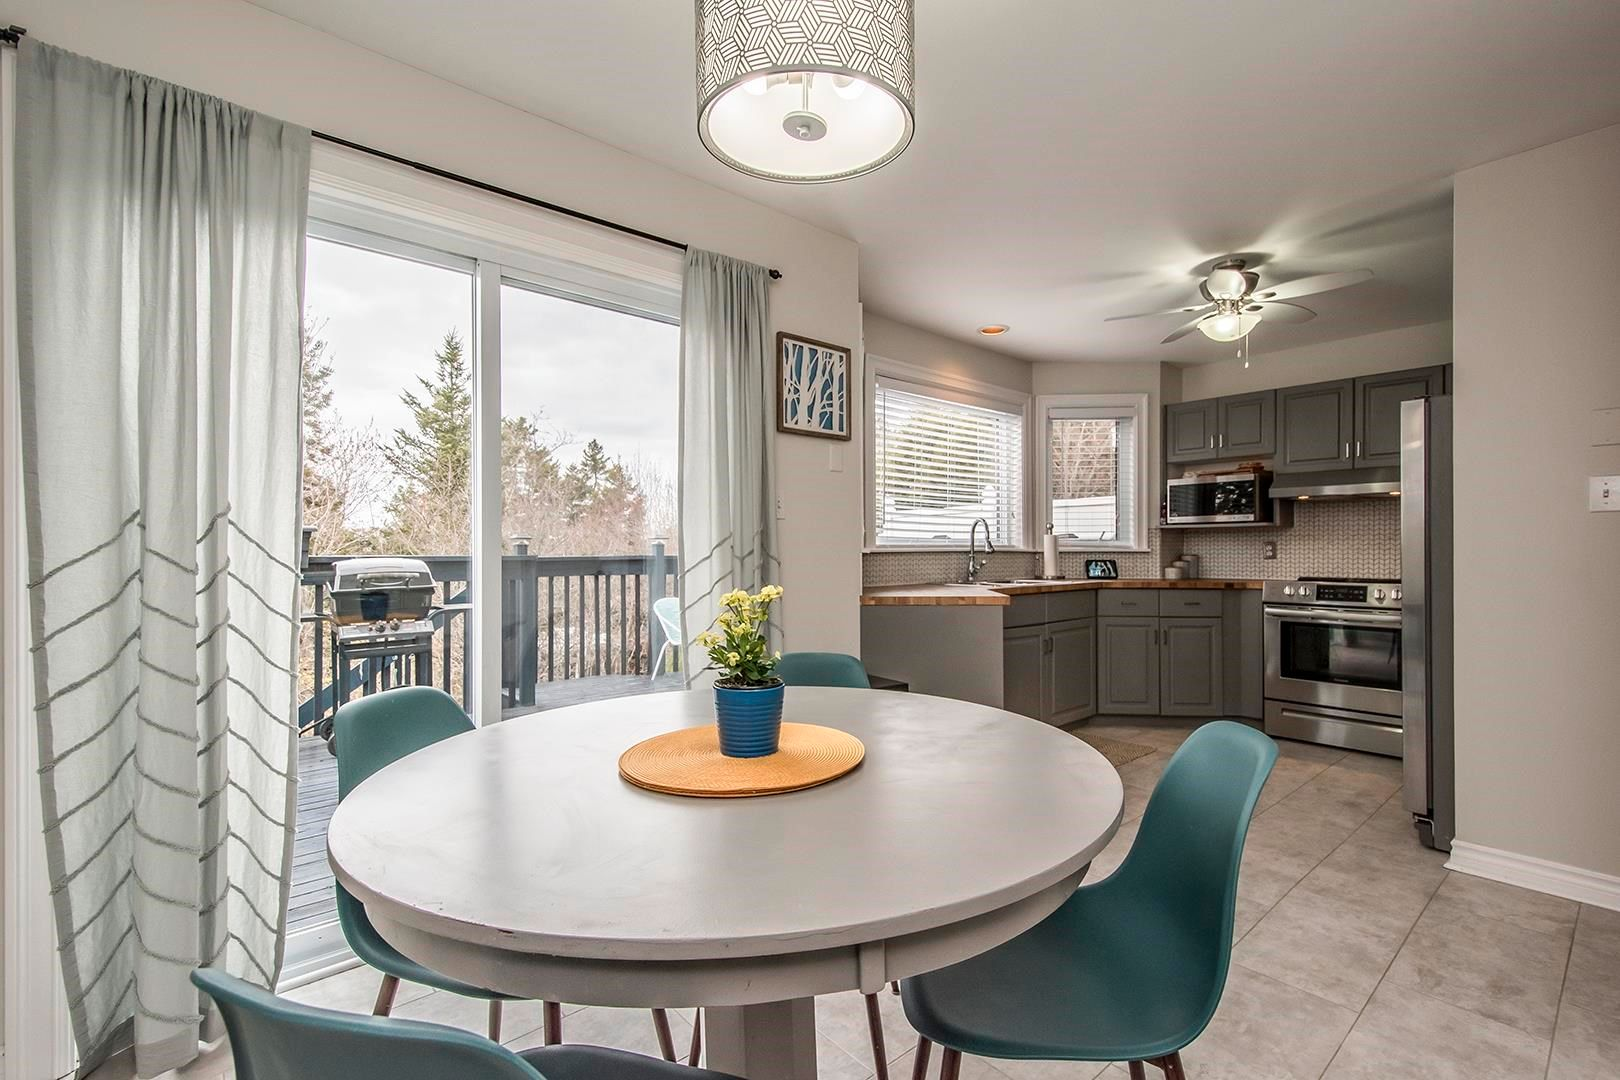 Photo 11: Photos: 64 Roy Crescent in Bedford: 20-Bedford Residential for sale (Halifax-Dartmouth)  : MLS®# 202110846